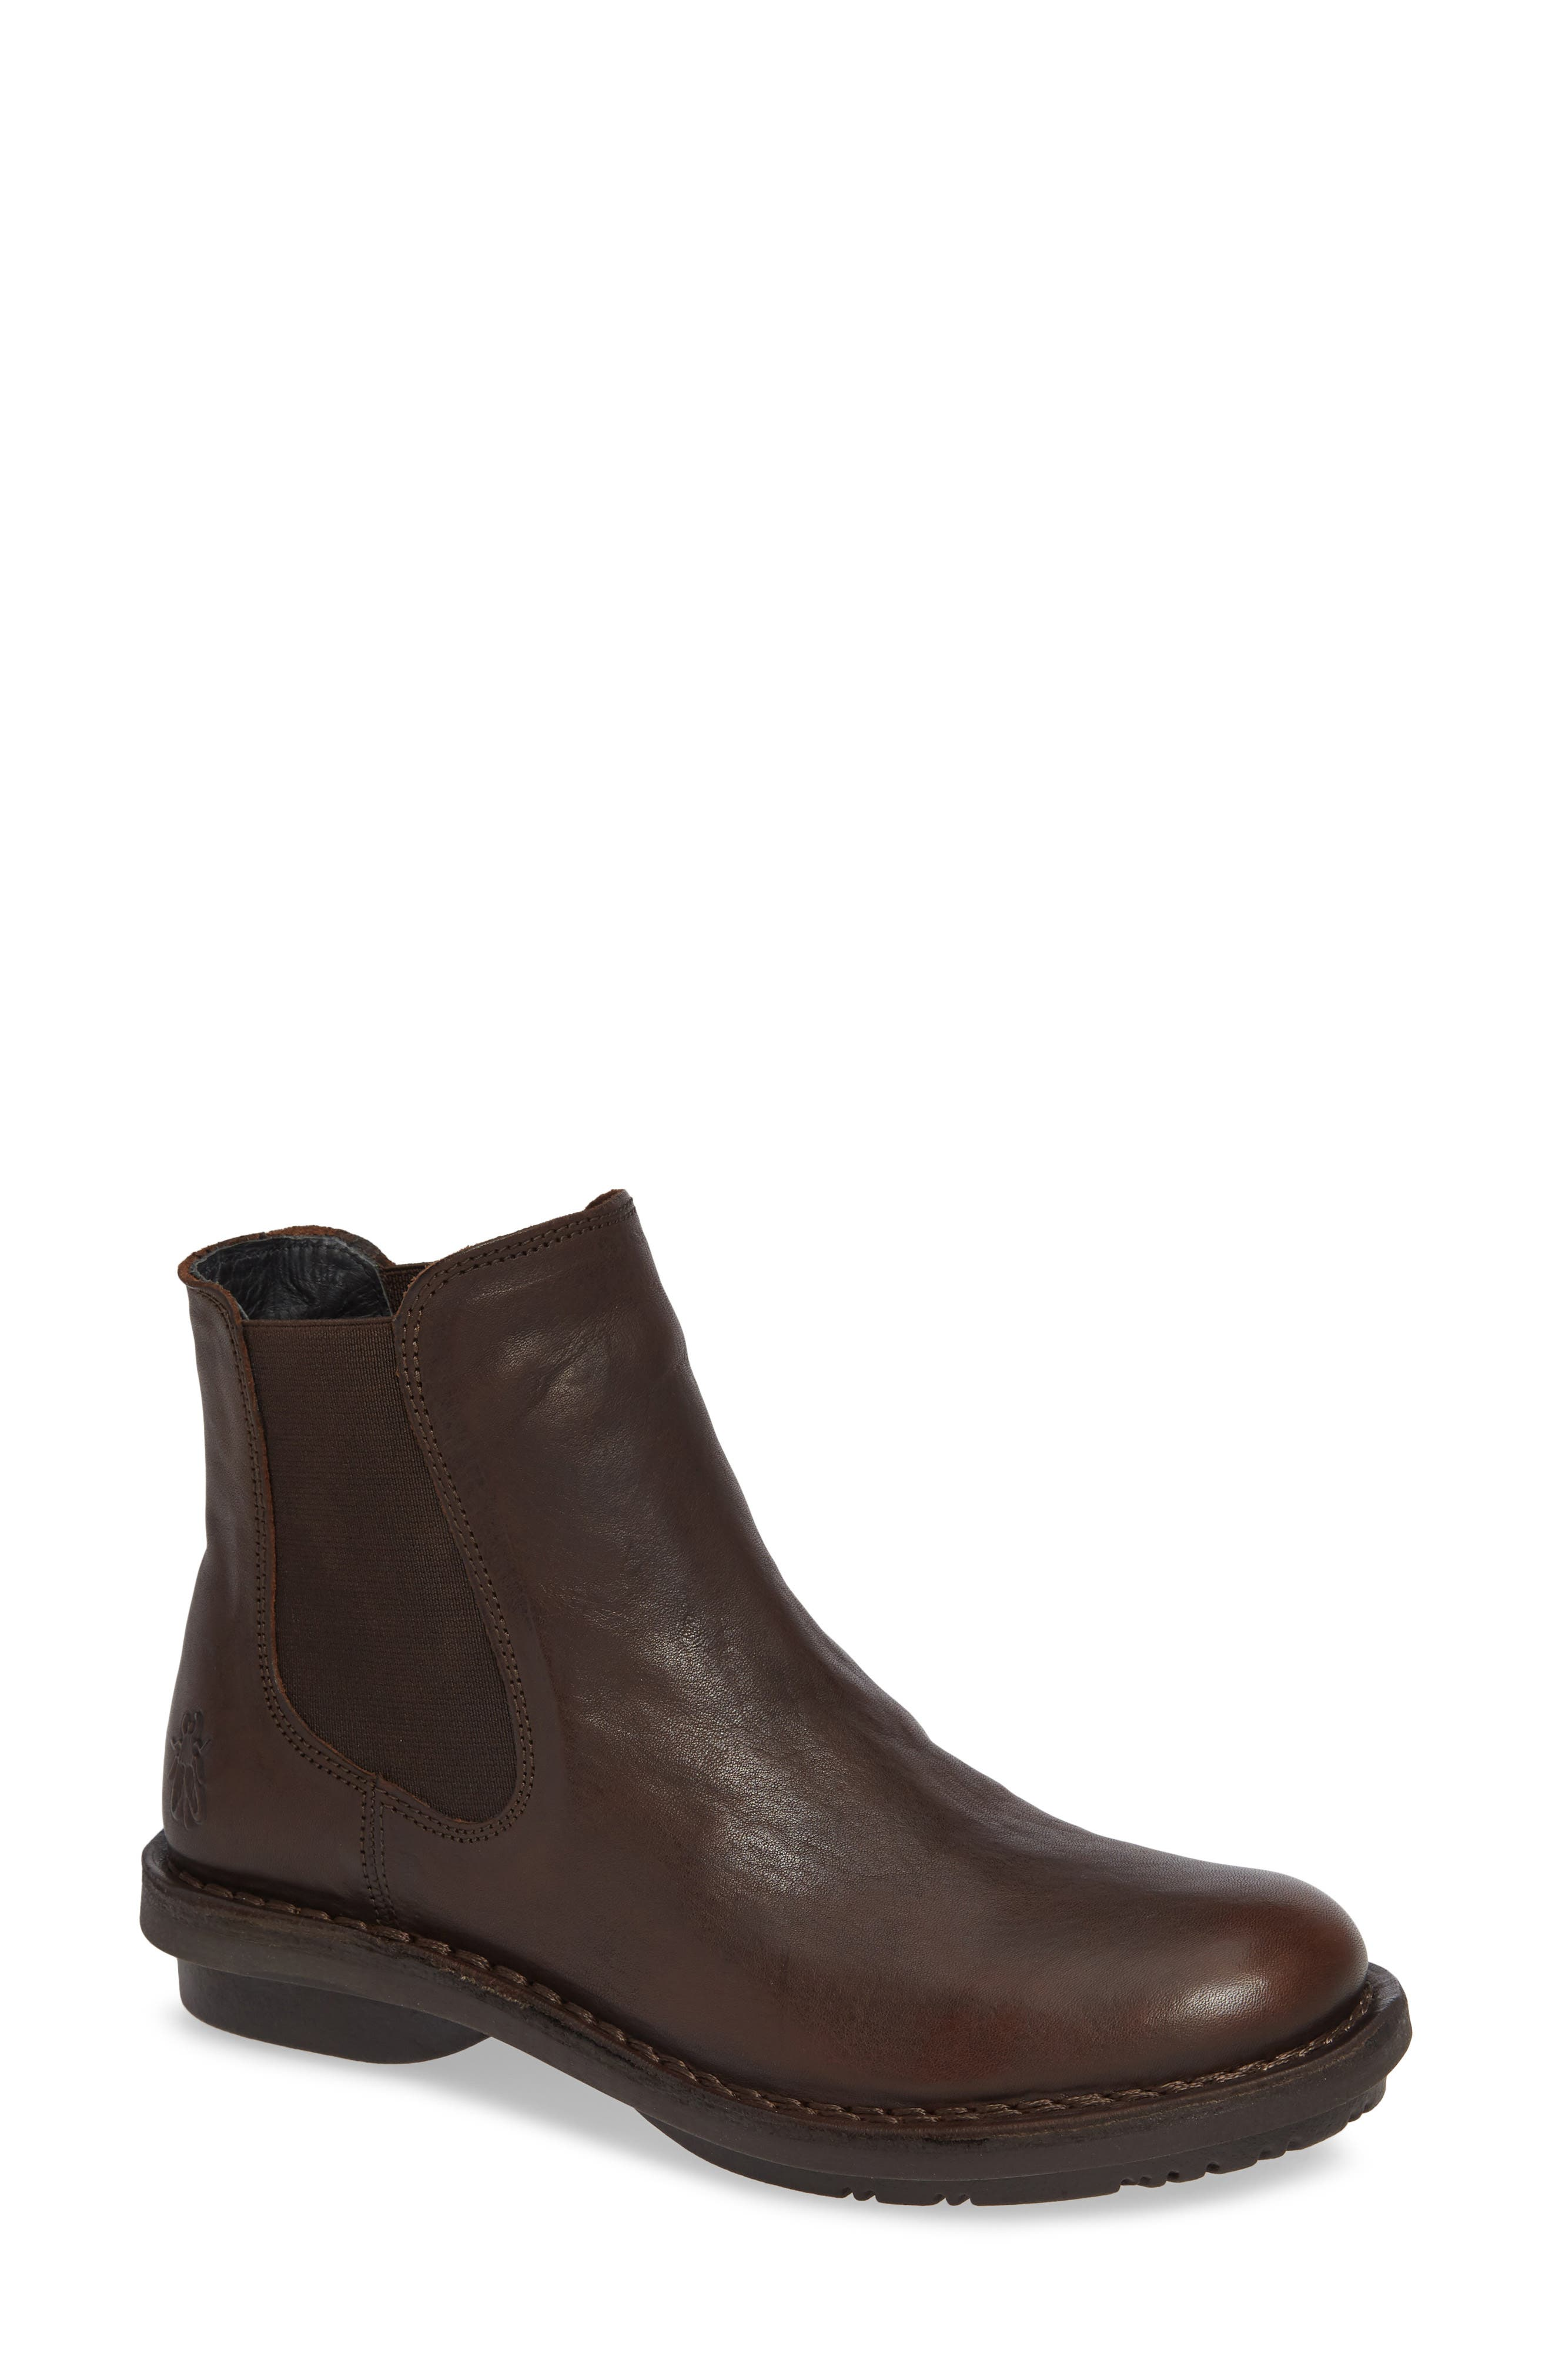 Fly London Feed Chelsea Bootie - Brown